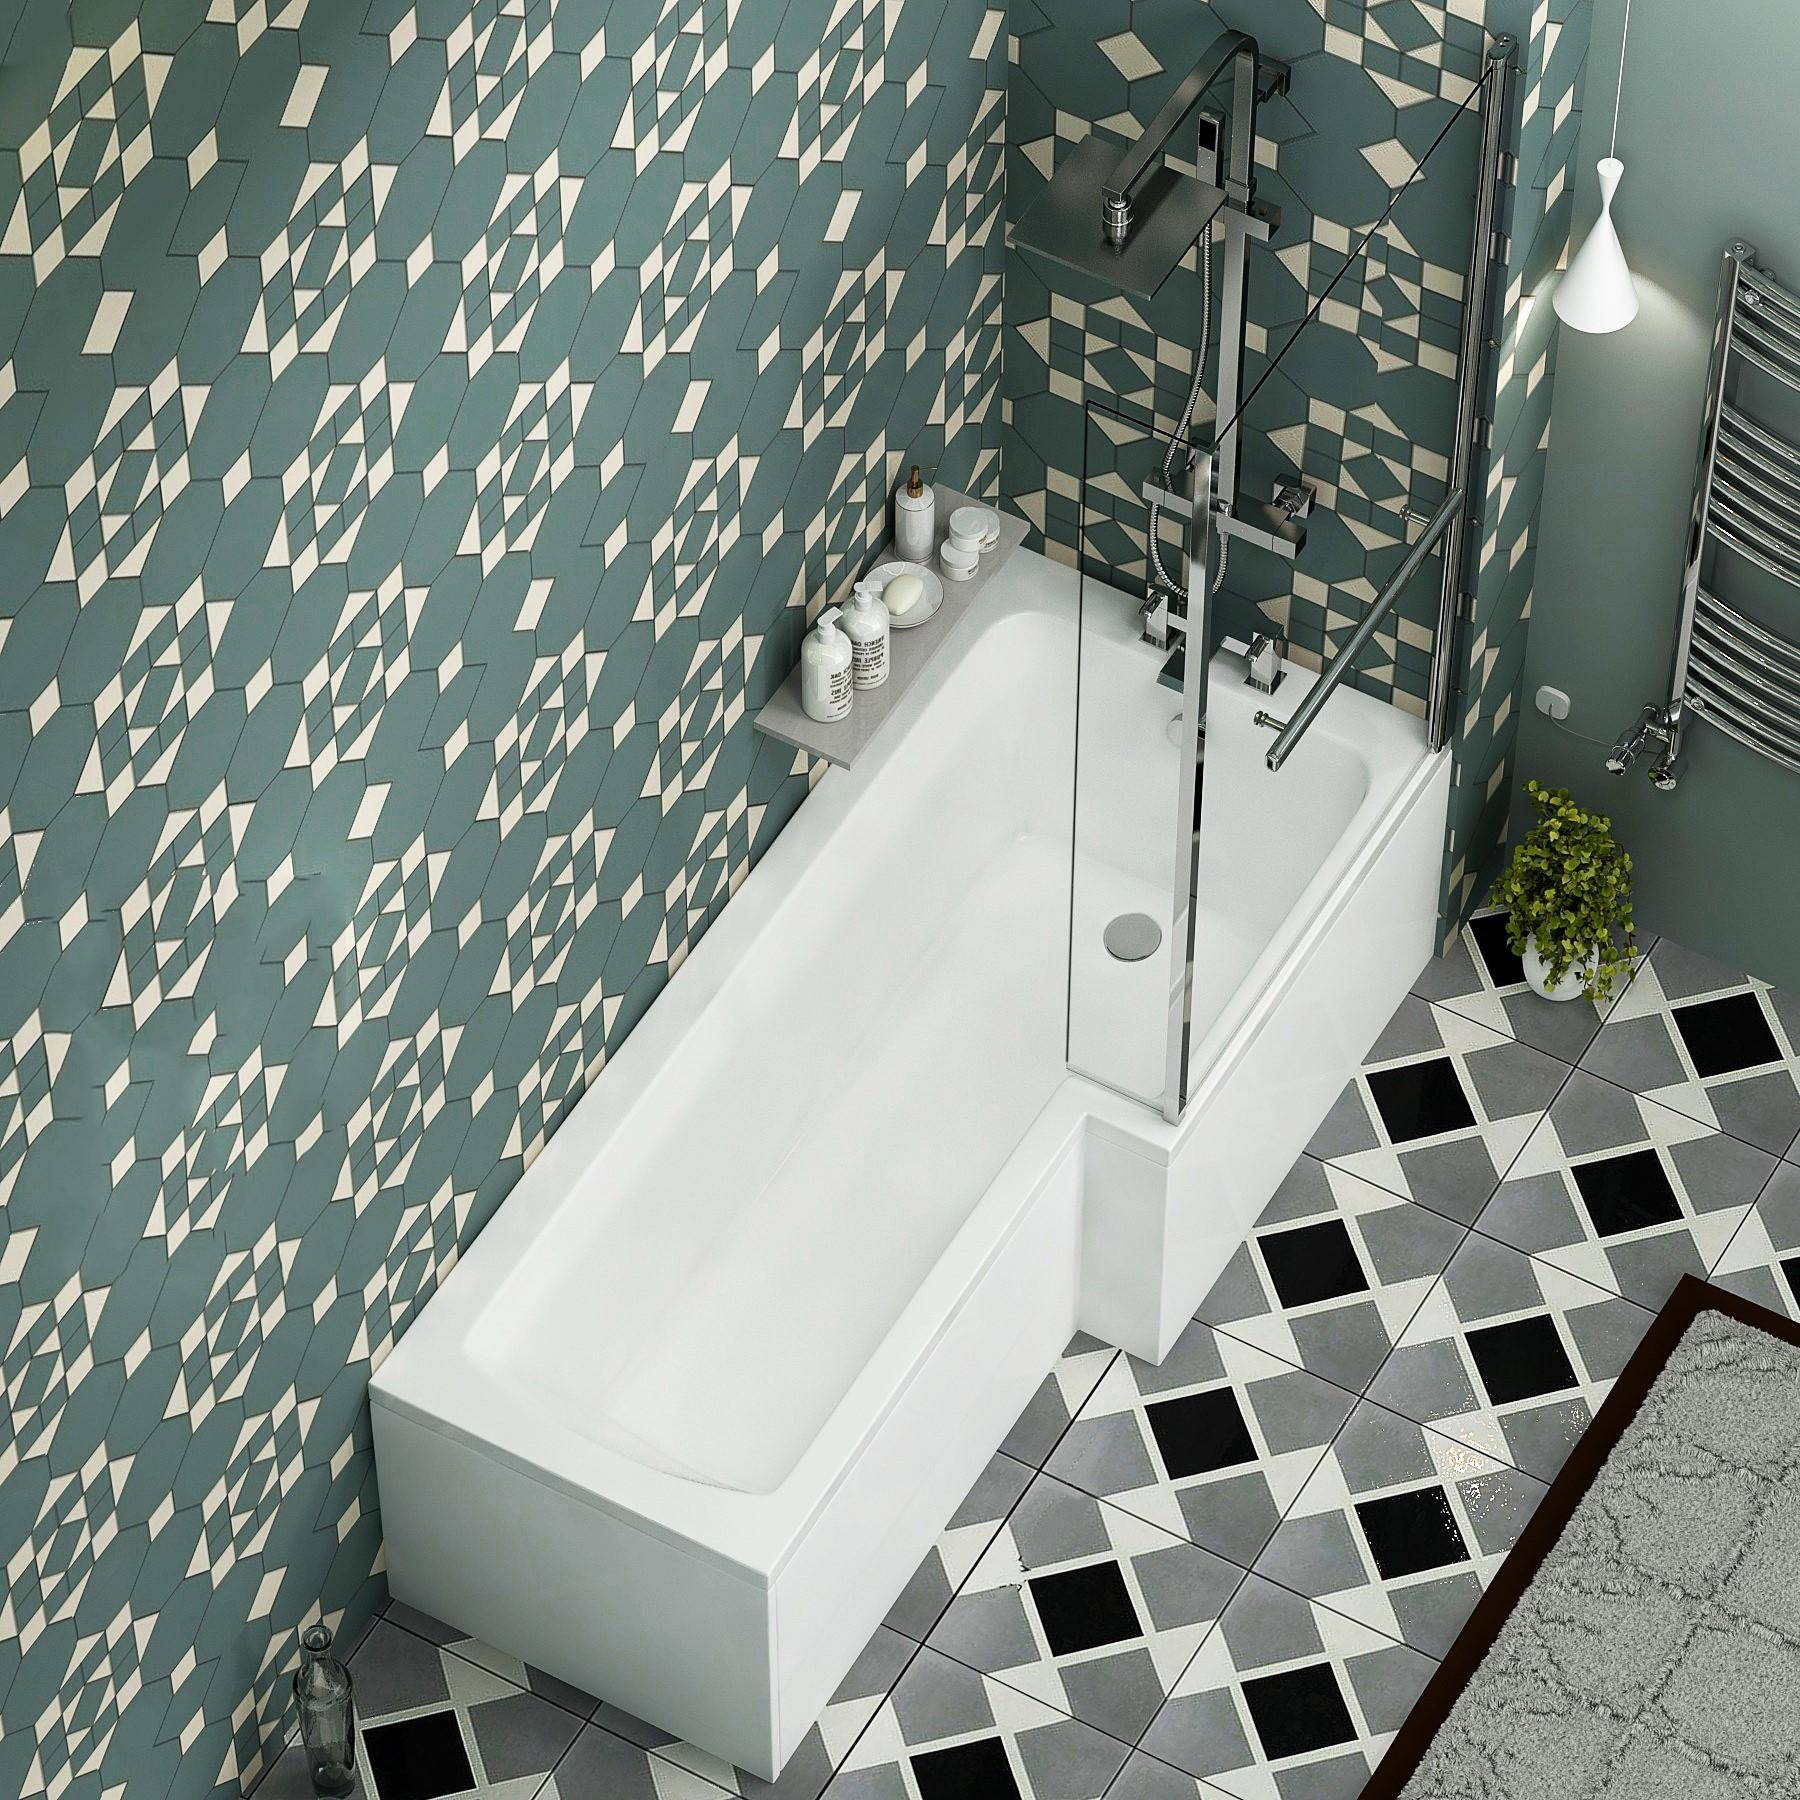 Royal Bathrooms Qubix 1500/1600/1700mm Right Hand L-Shaped Shower Bath tub with Shower Screen, Side & End Panel